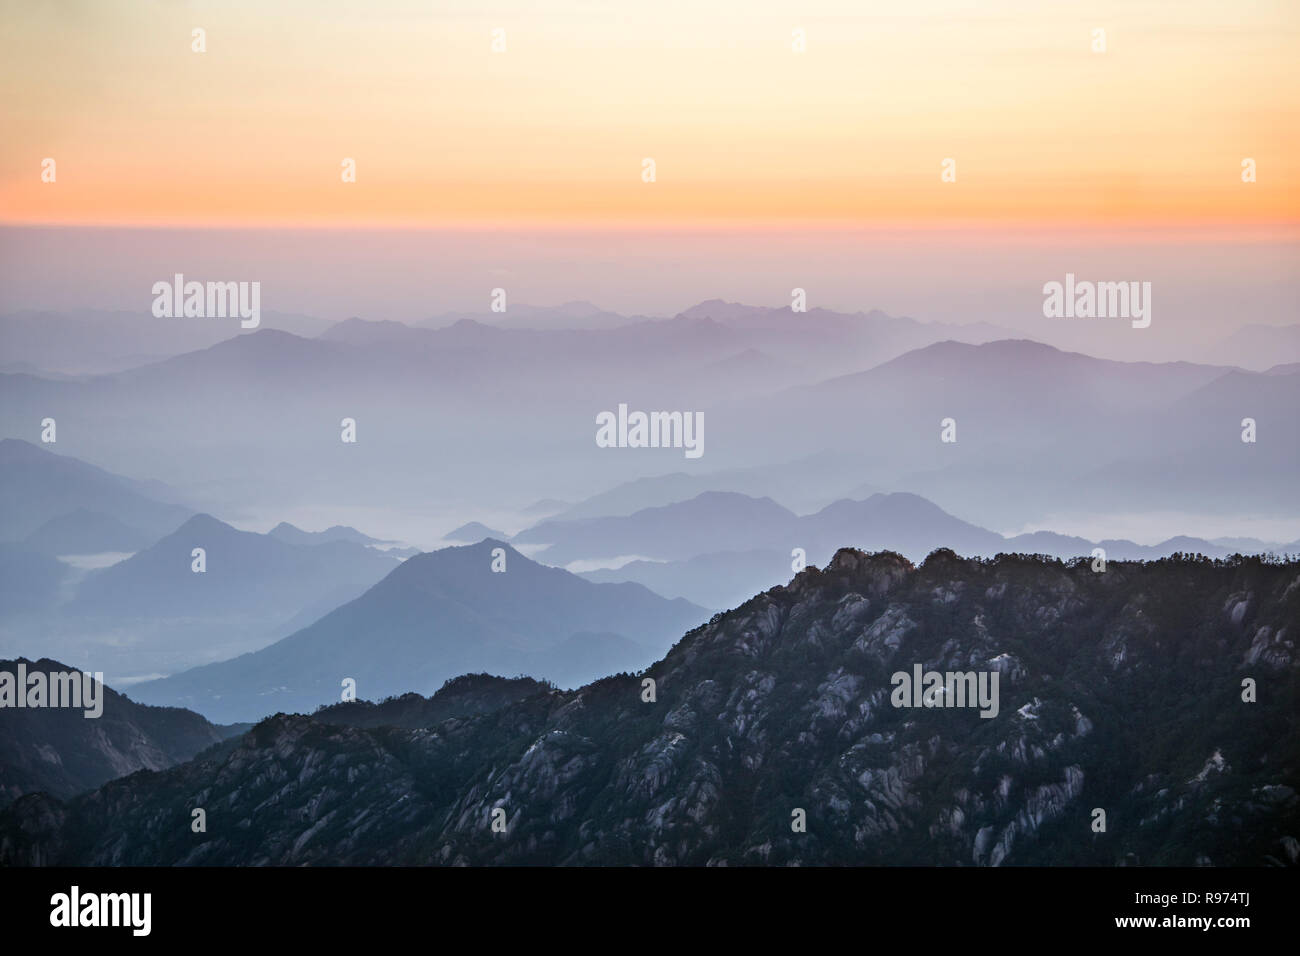 Huangshan National Park at sunrise with mists and pollution, Anhui, China - Stock Image